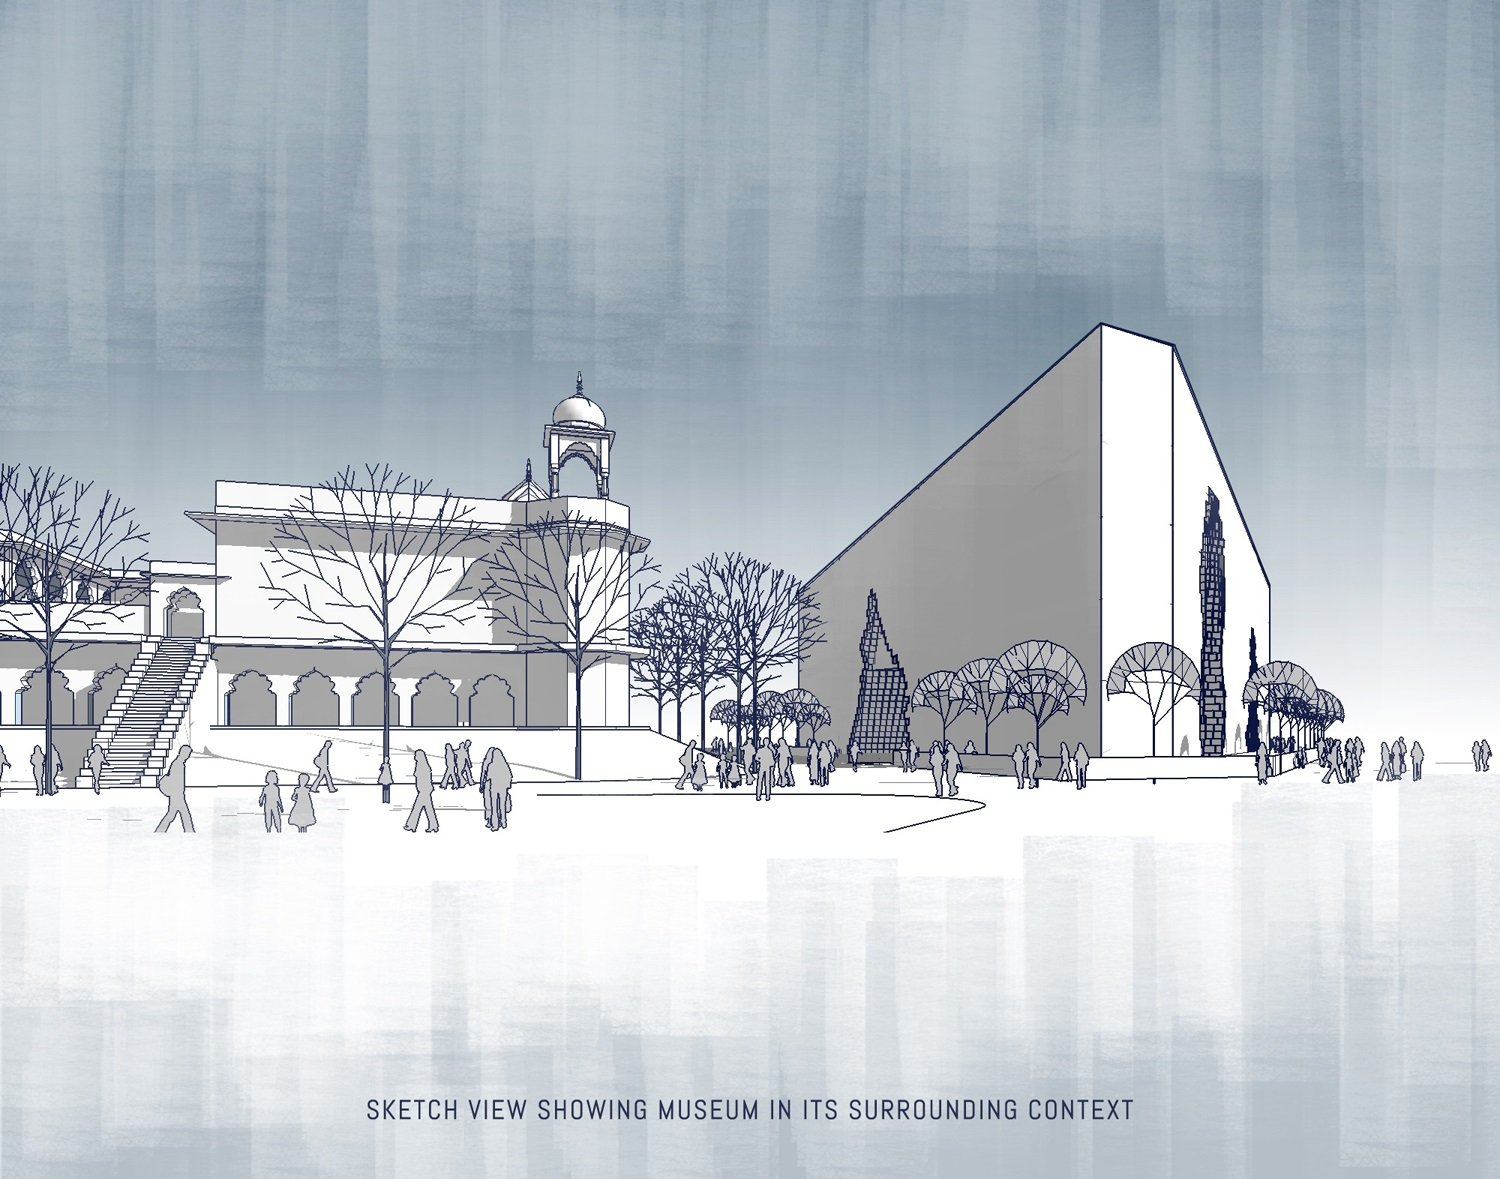 SKETCH SHOWING MUSEUM IN ITS SURROUNDING CONTEXT  SANJAY PURI ARCHITECTS